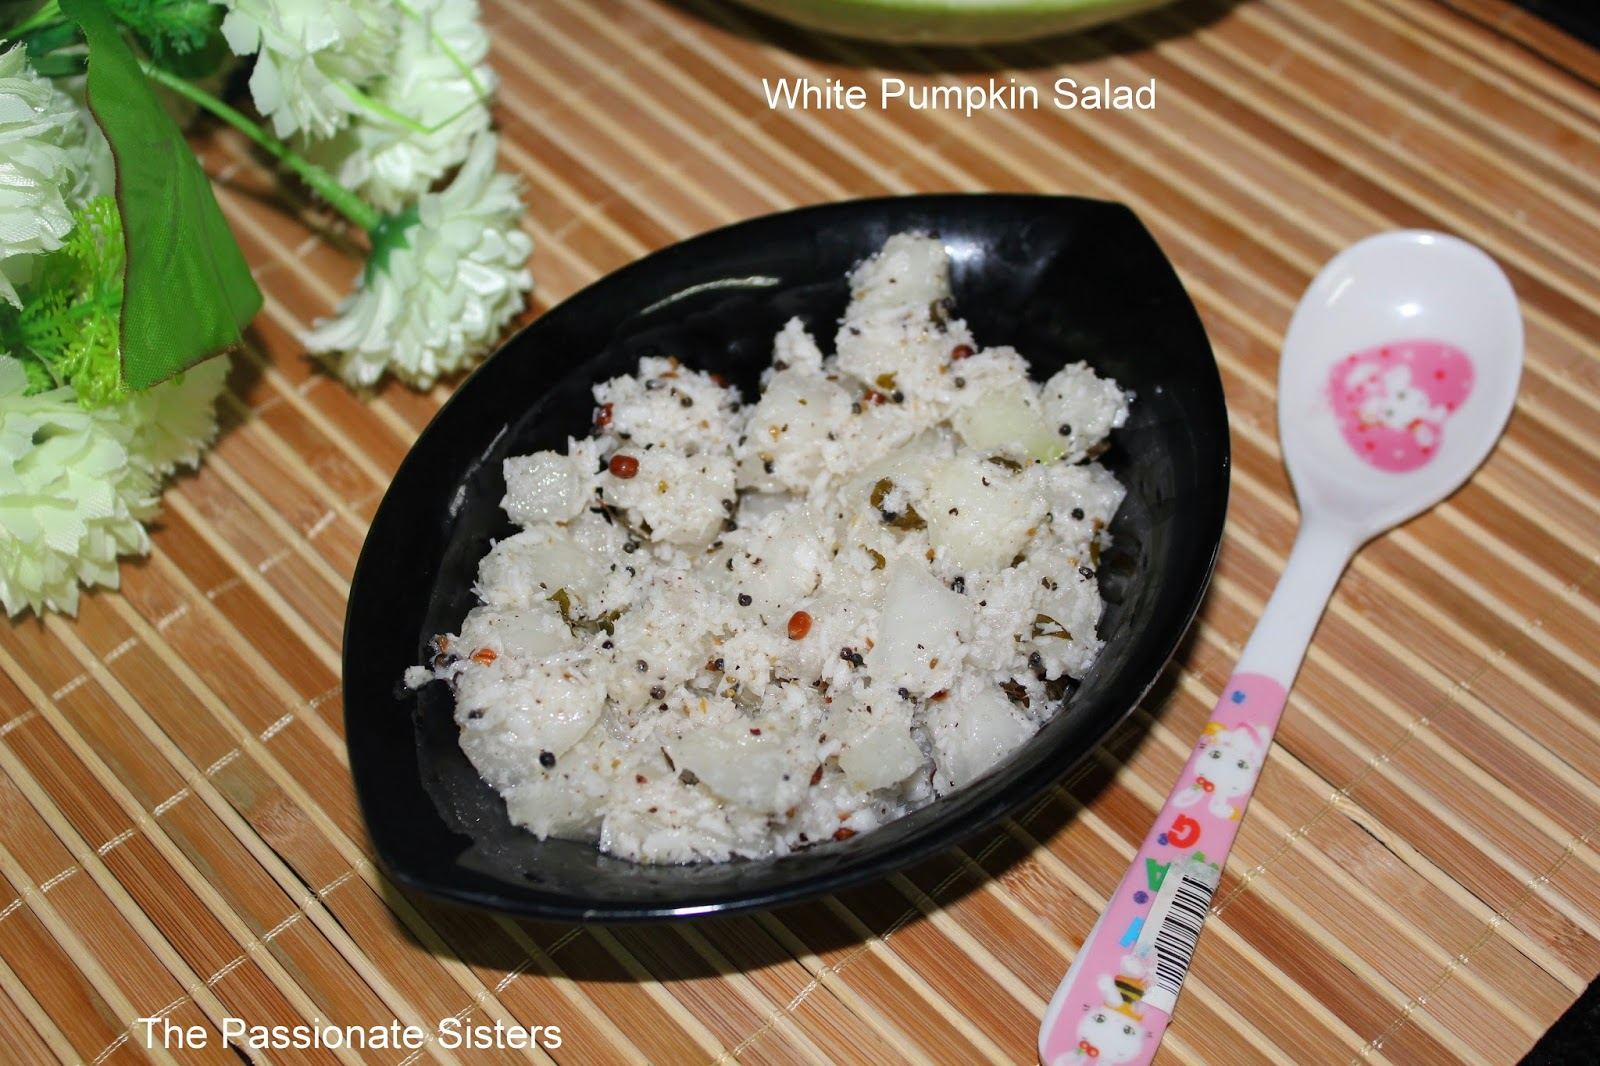 White Pumpkin salad